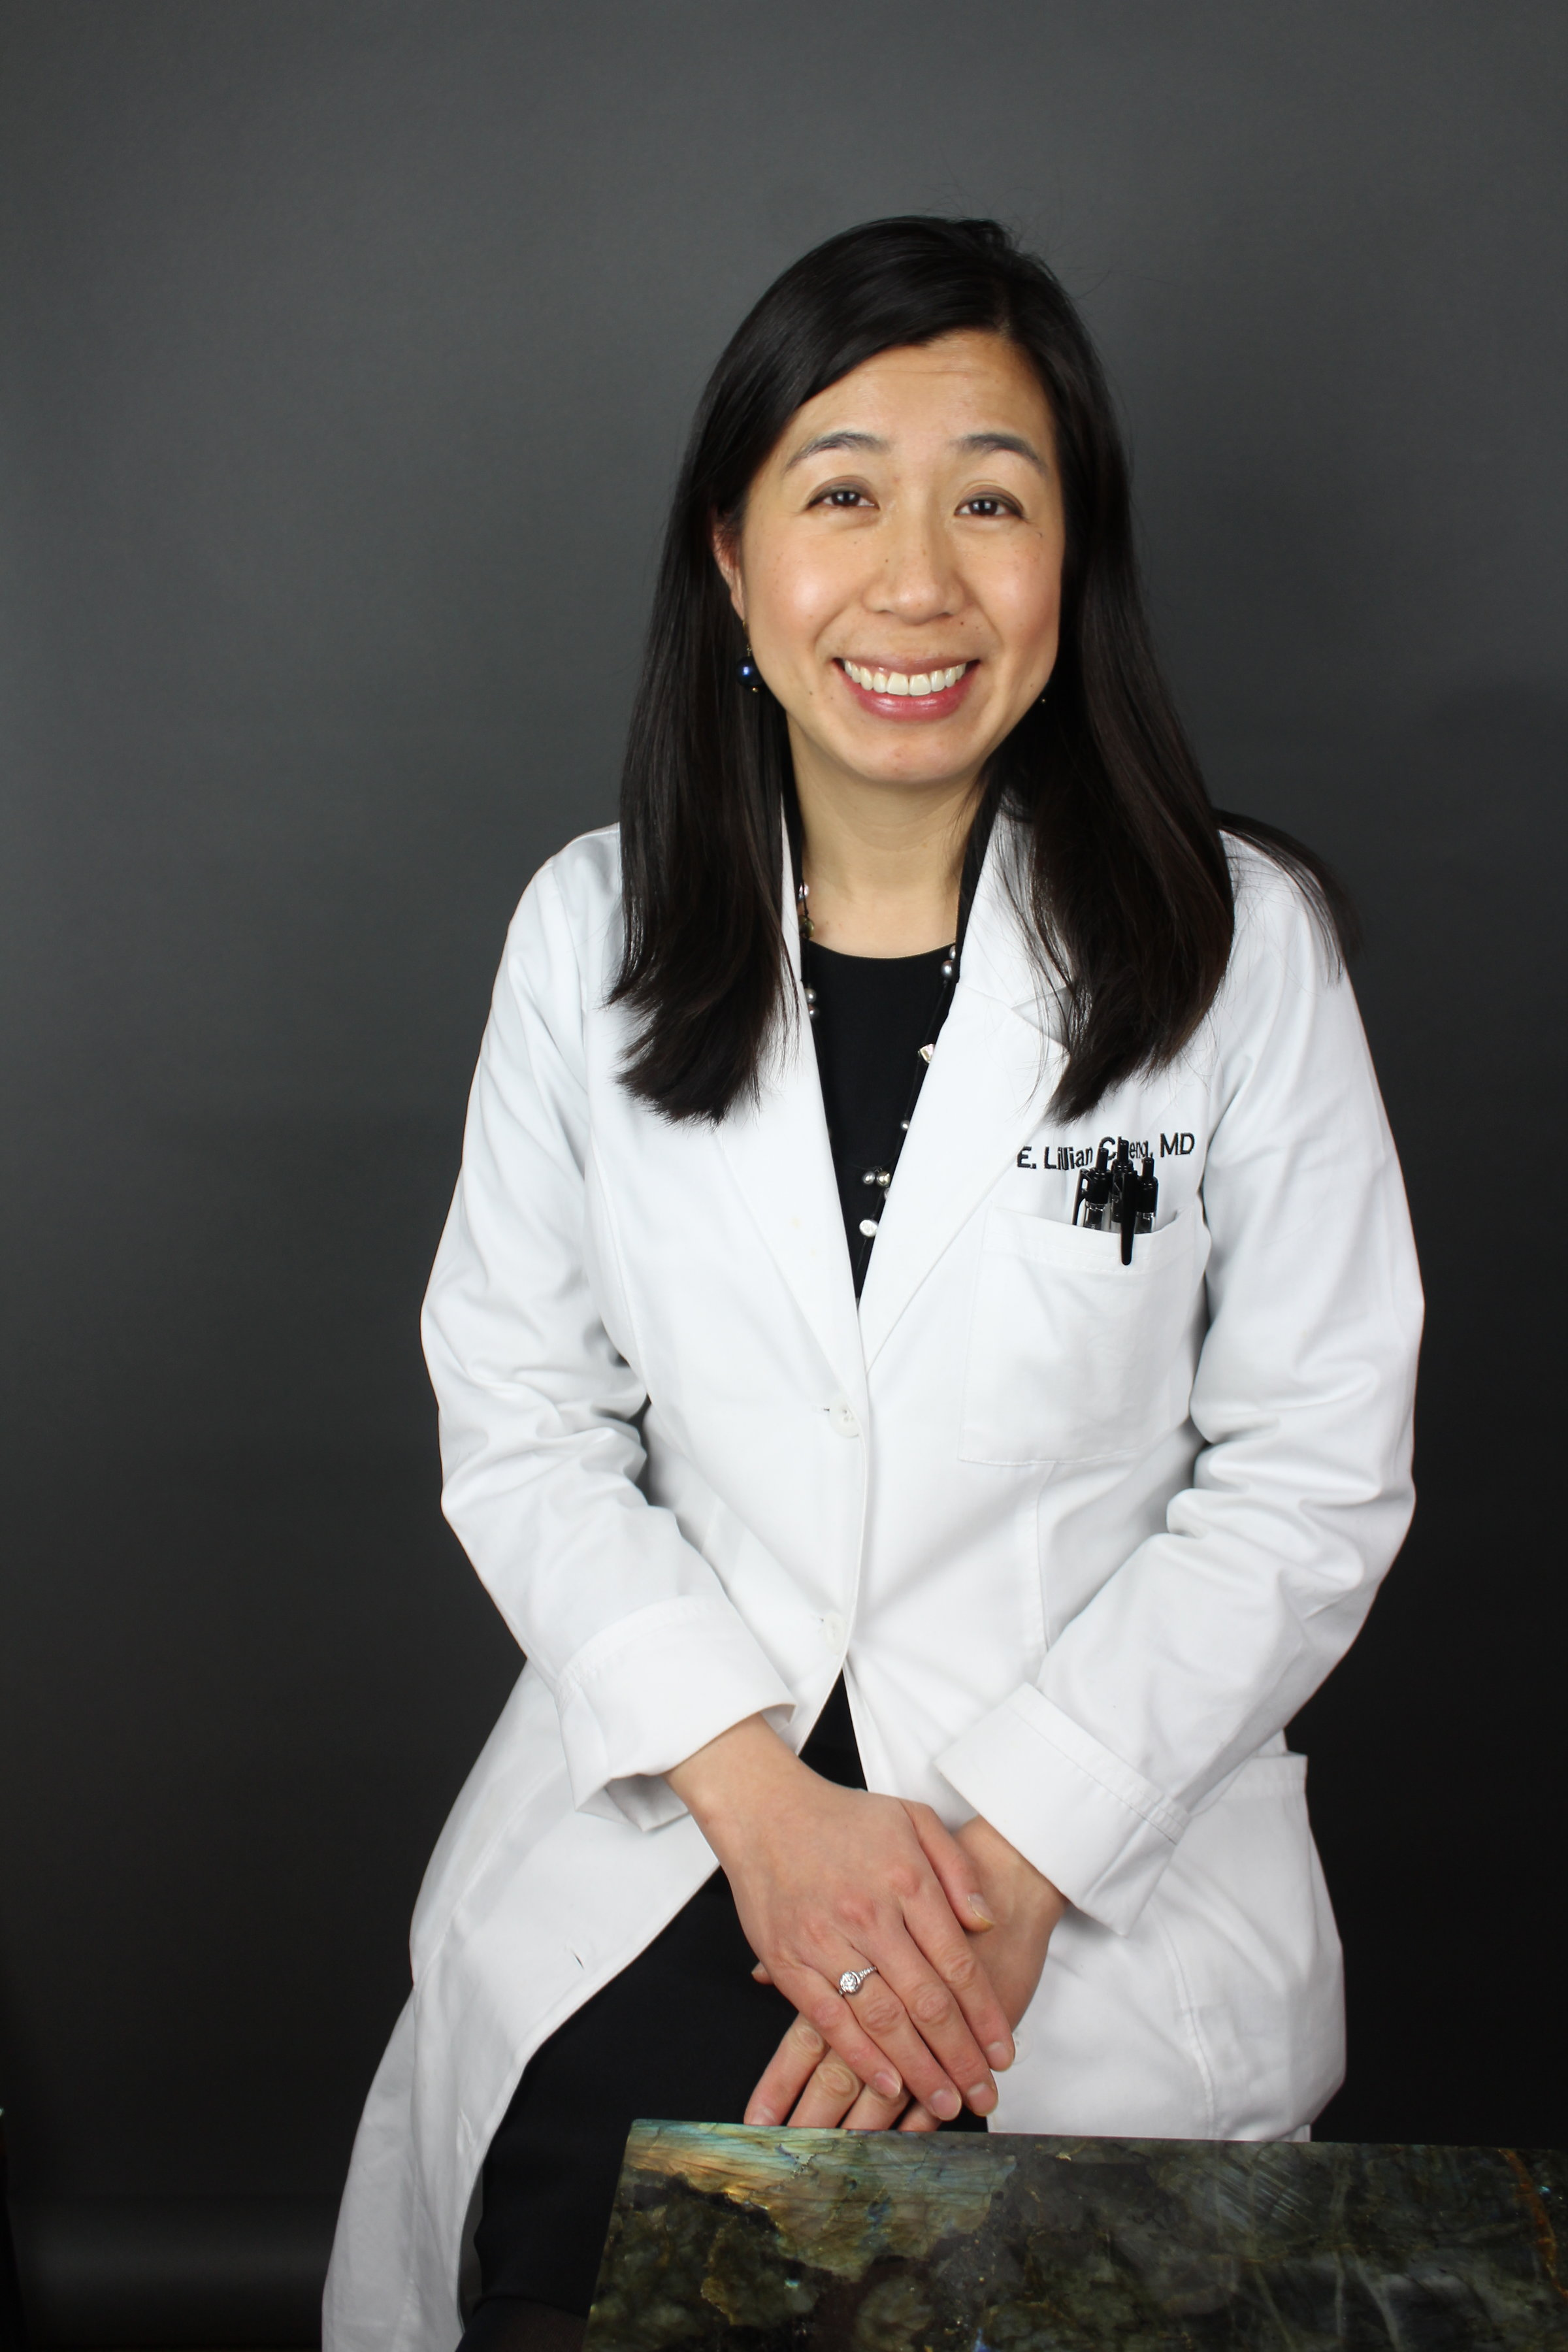 Picture of E. Lillian Cheng MD